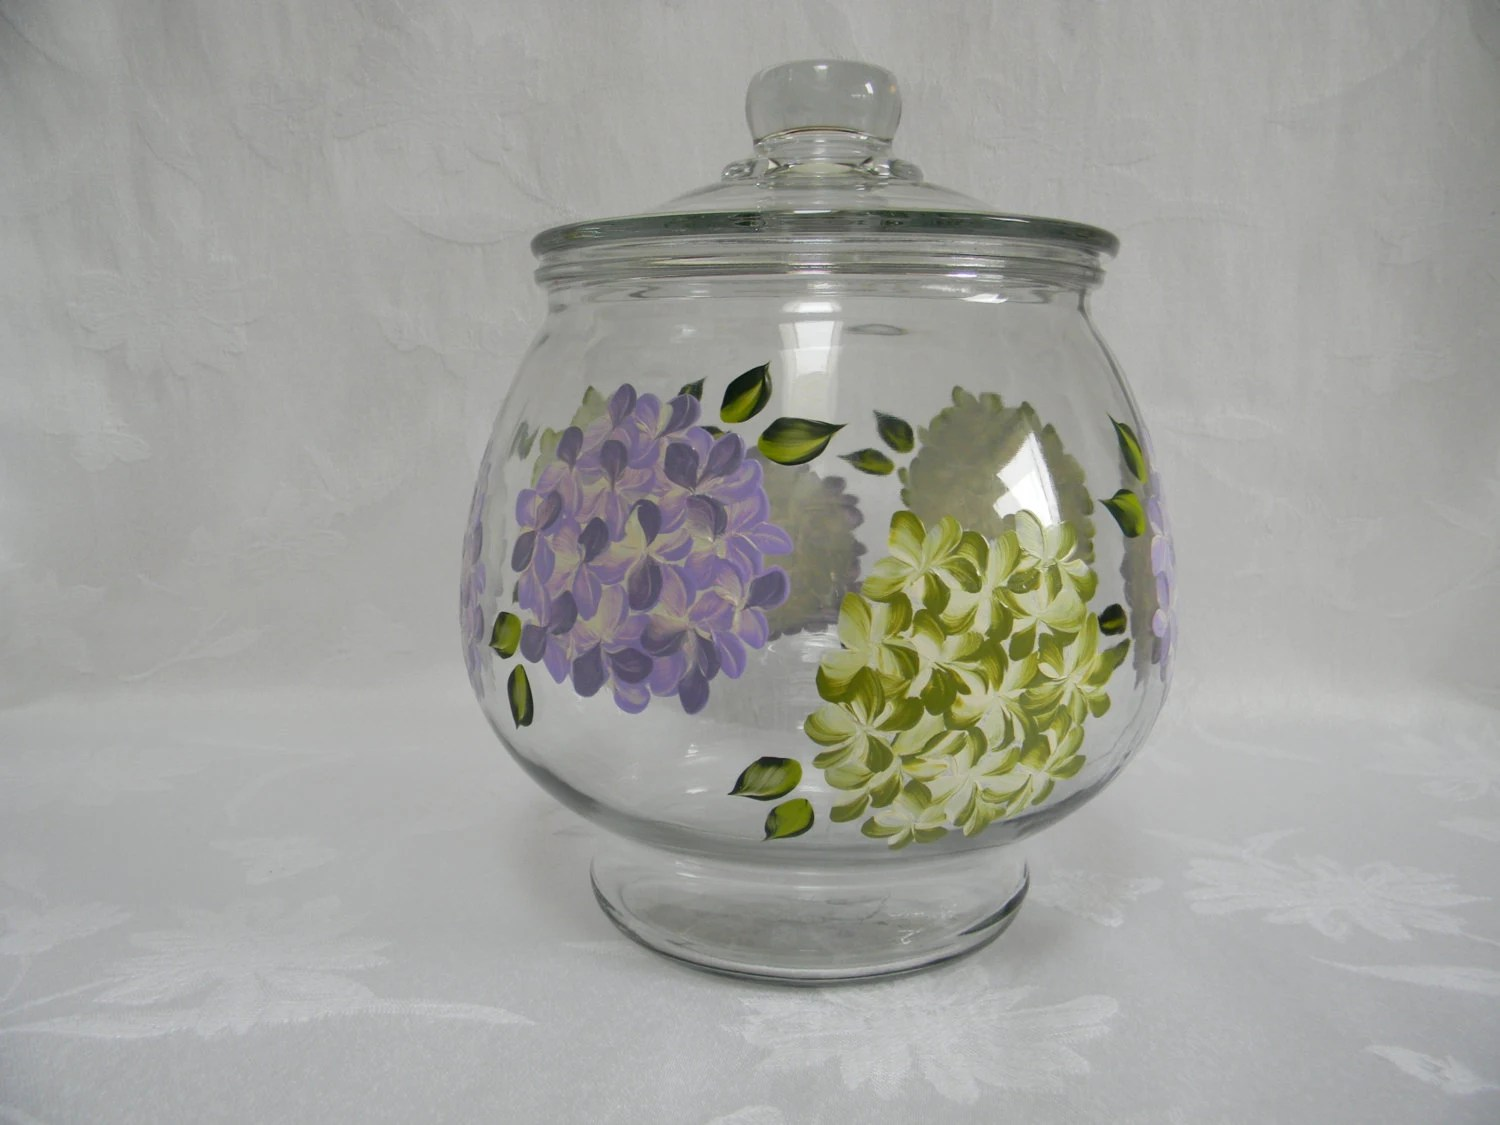 Huge Glass Cookie Jar Cookie Jar Glass Cookie Jar Large Canister Kitchen Storage